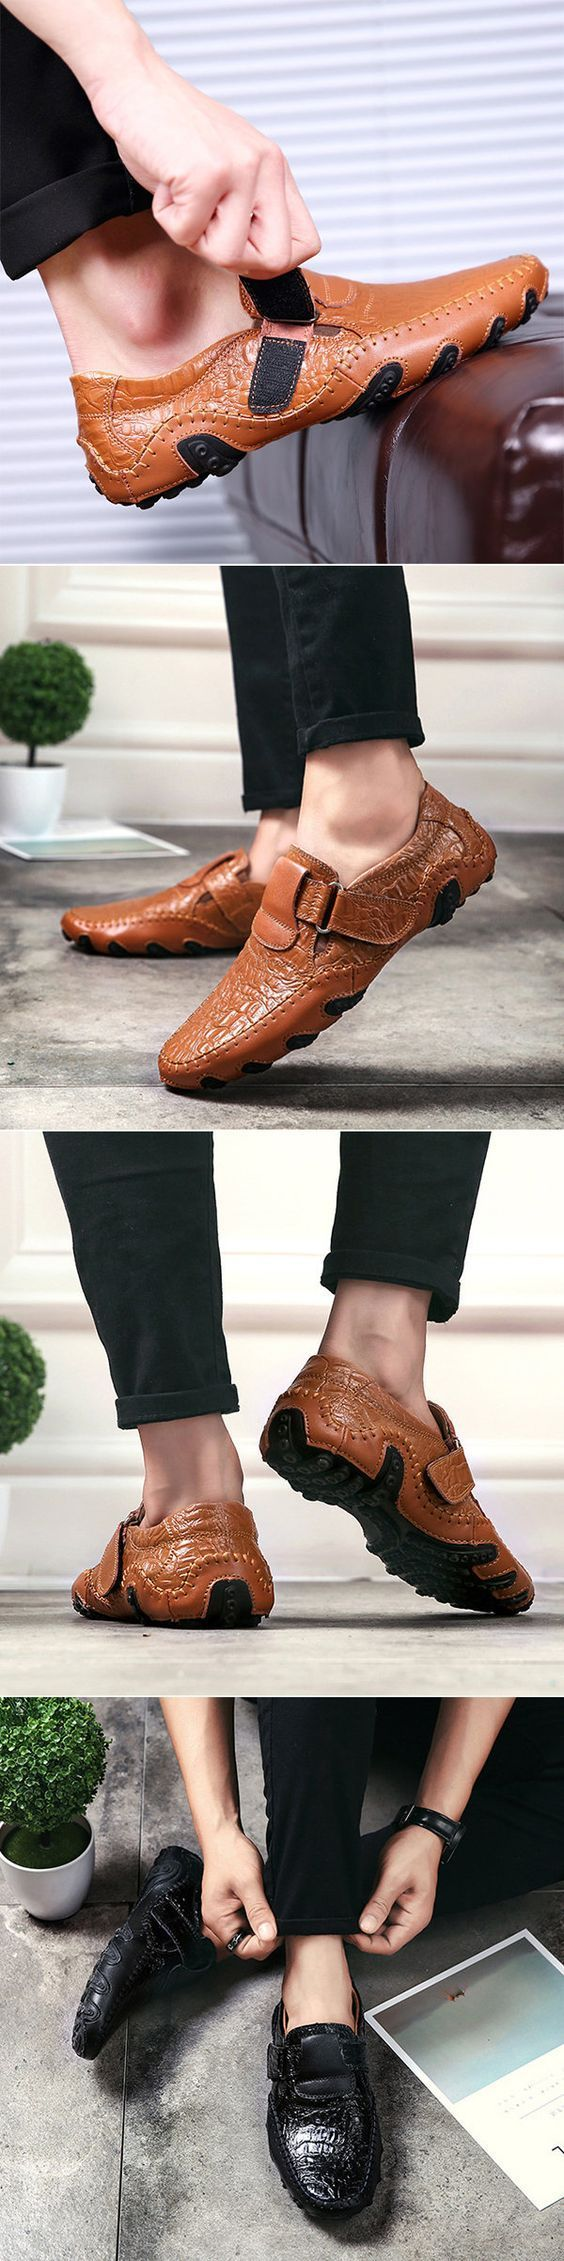 b63d4a65e151f Big Size Handmade Genuine Leather Loafers Stitching Soft Sole Casual  Driving Shoes